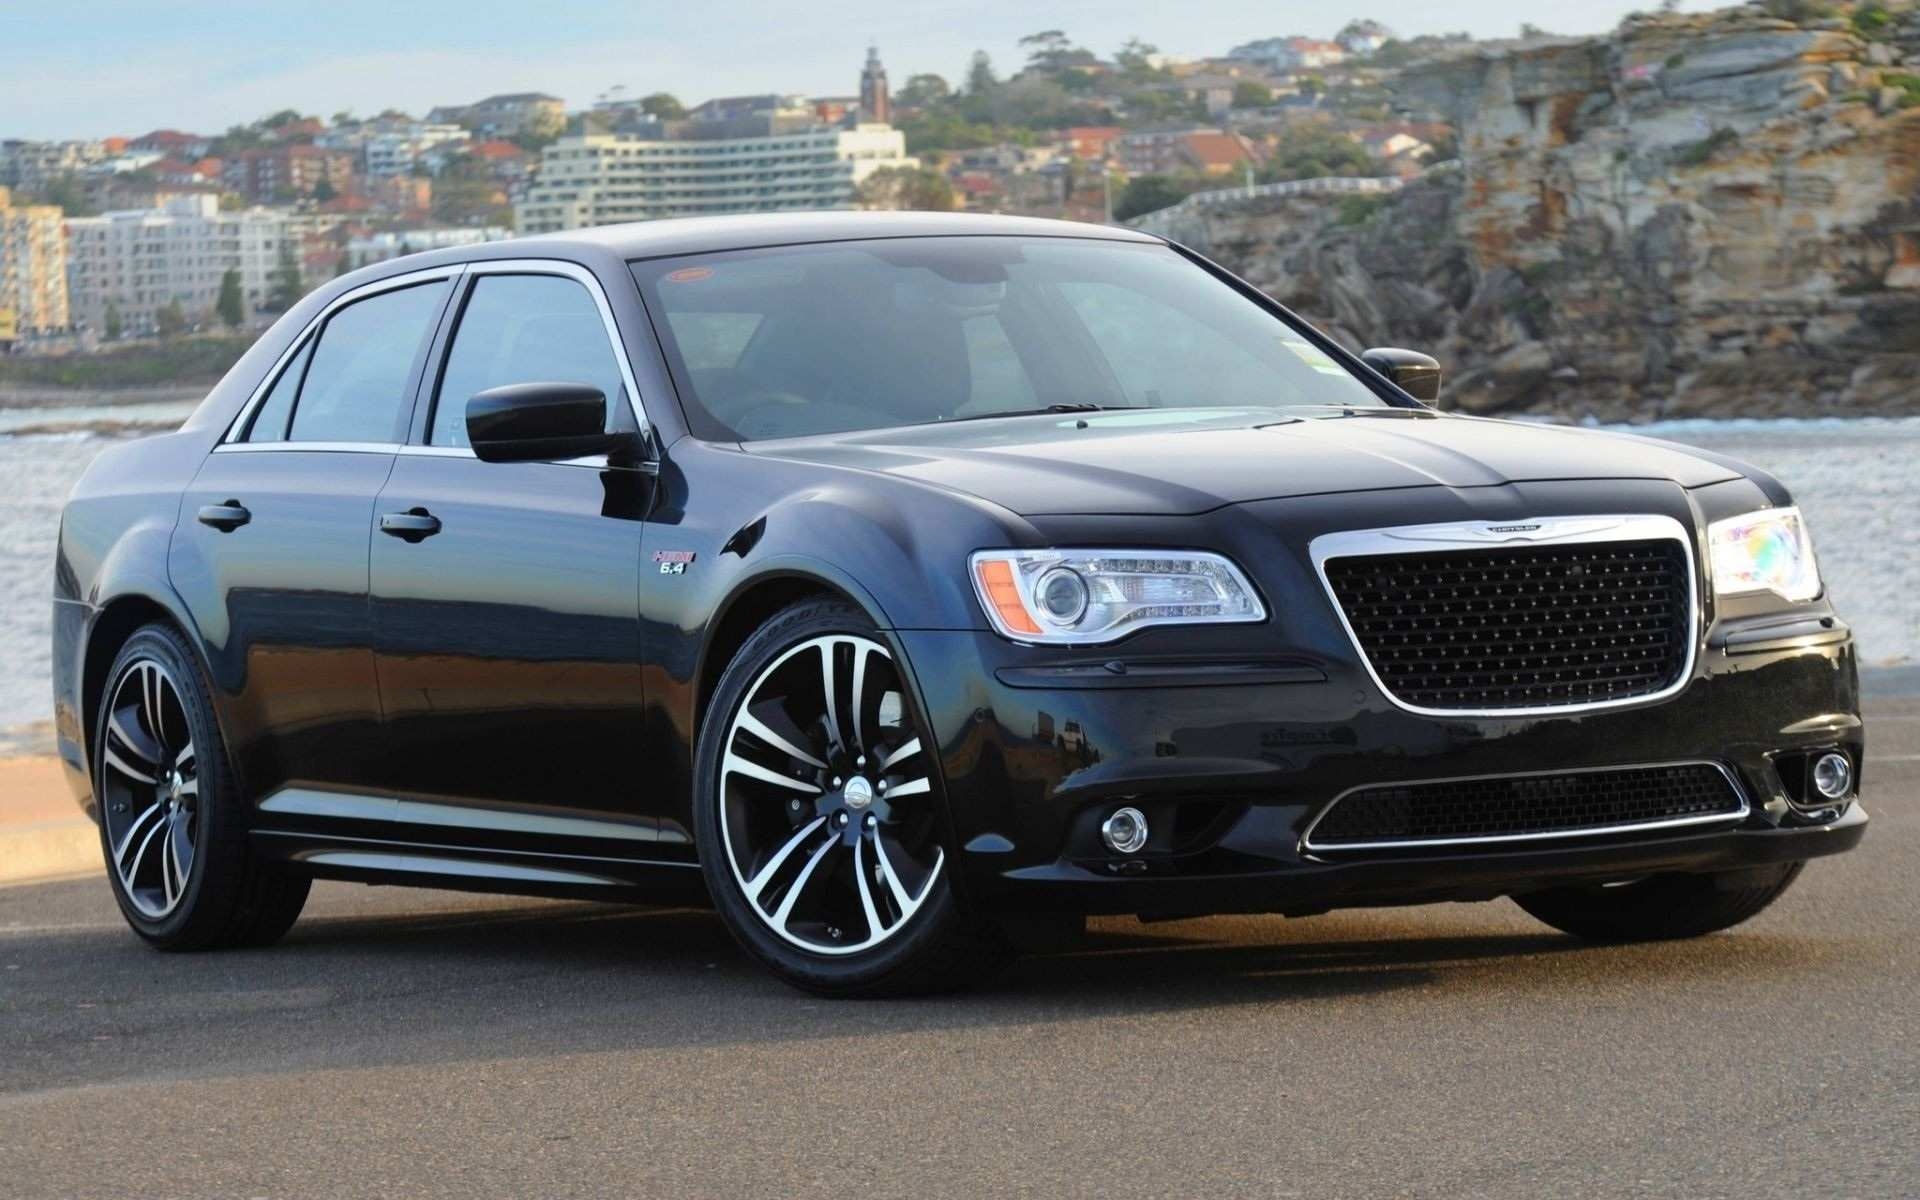 51 The Best 2020 Chrysler 300 Srt 8 Reviews